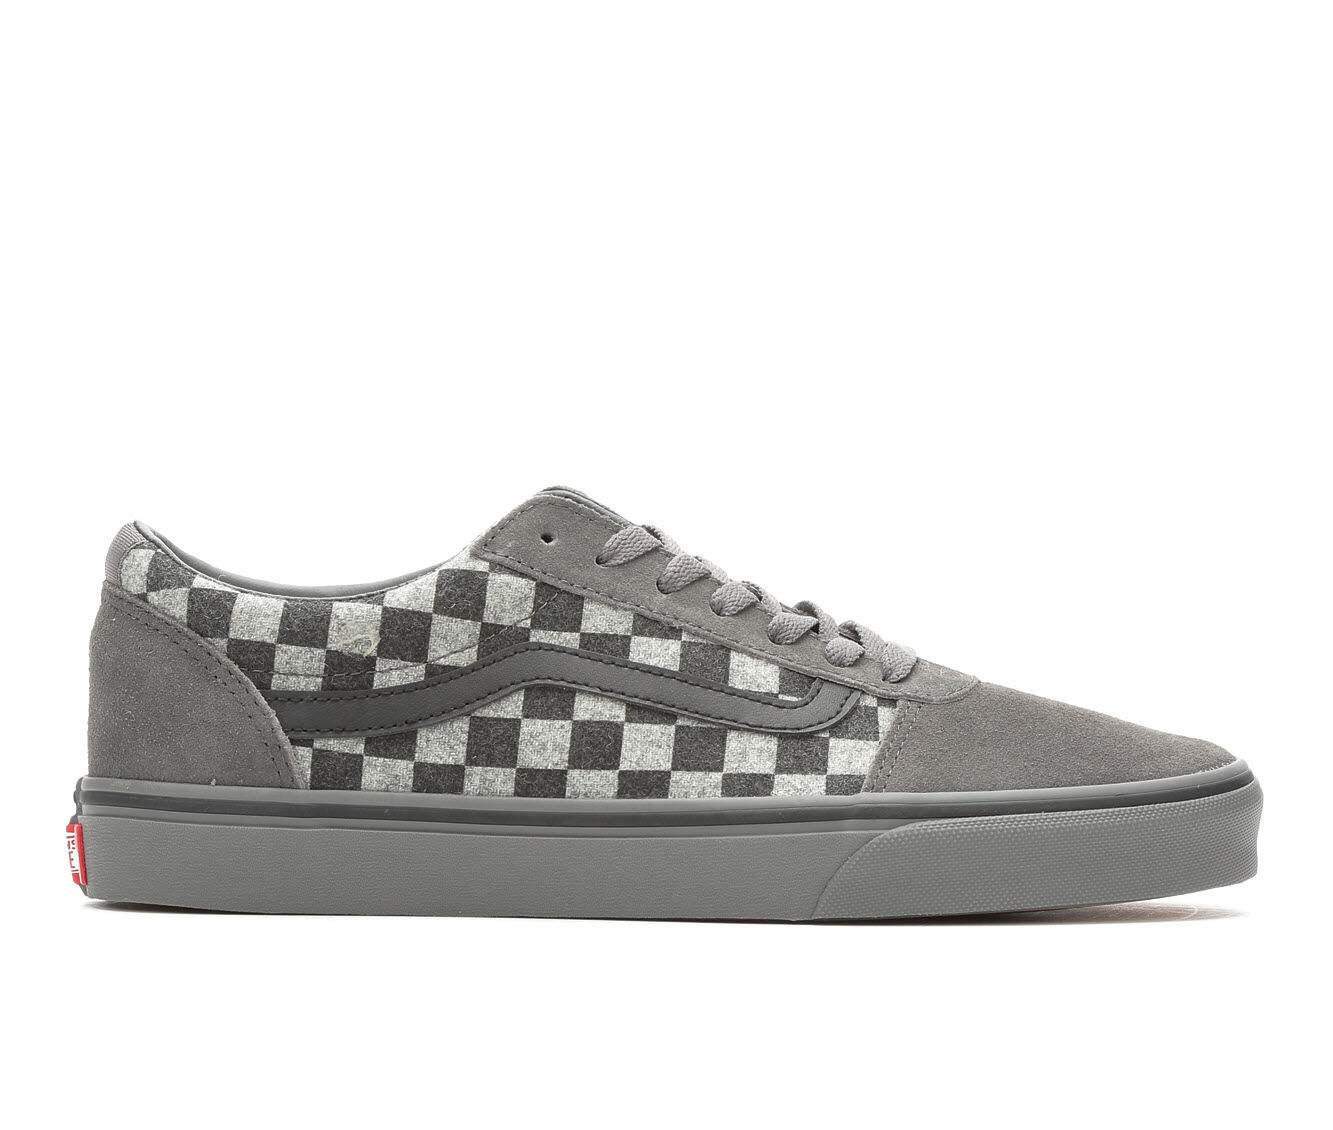 Men's Vans Ward Skate Shoes Gry/Gry Check